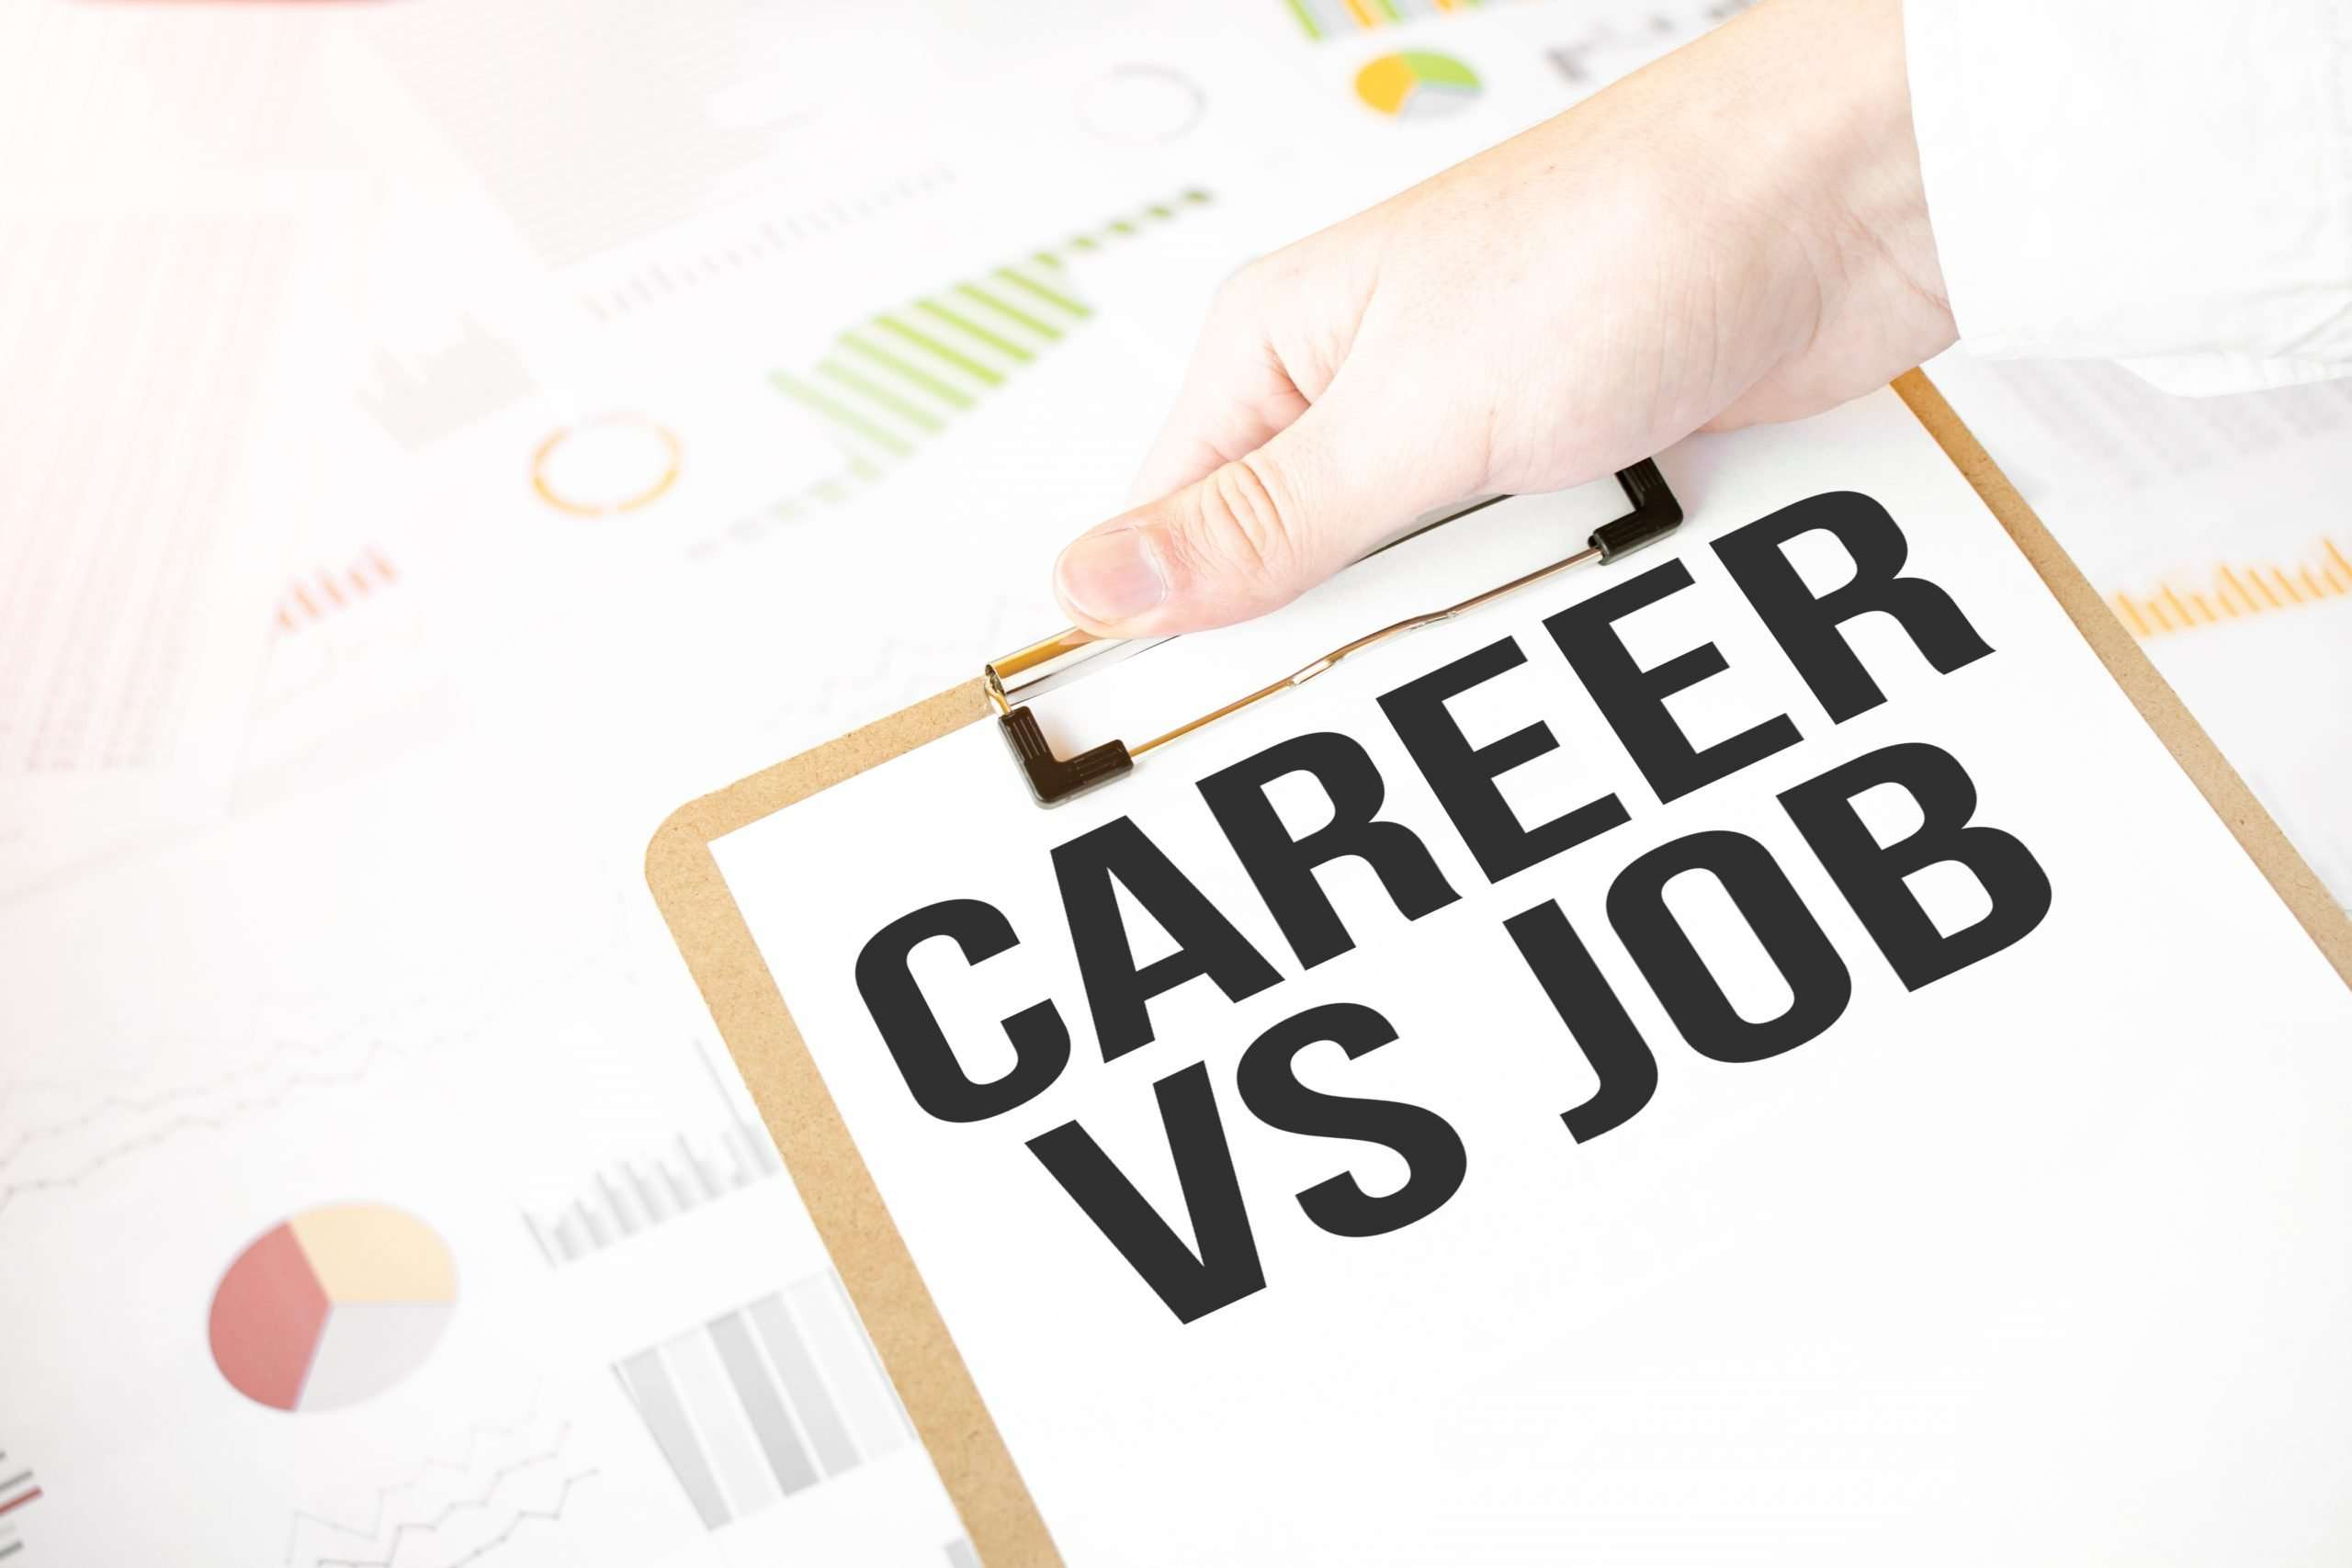 Business vs job – which is better, what's the difference